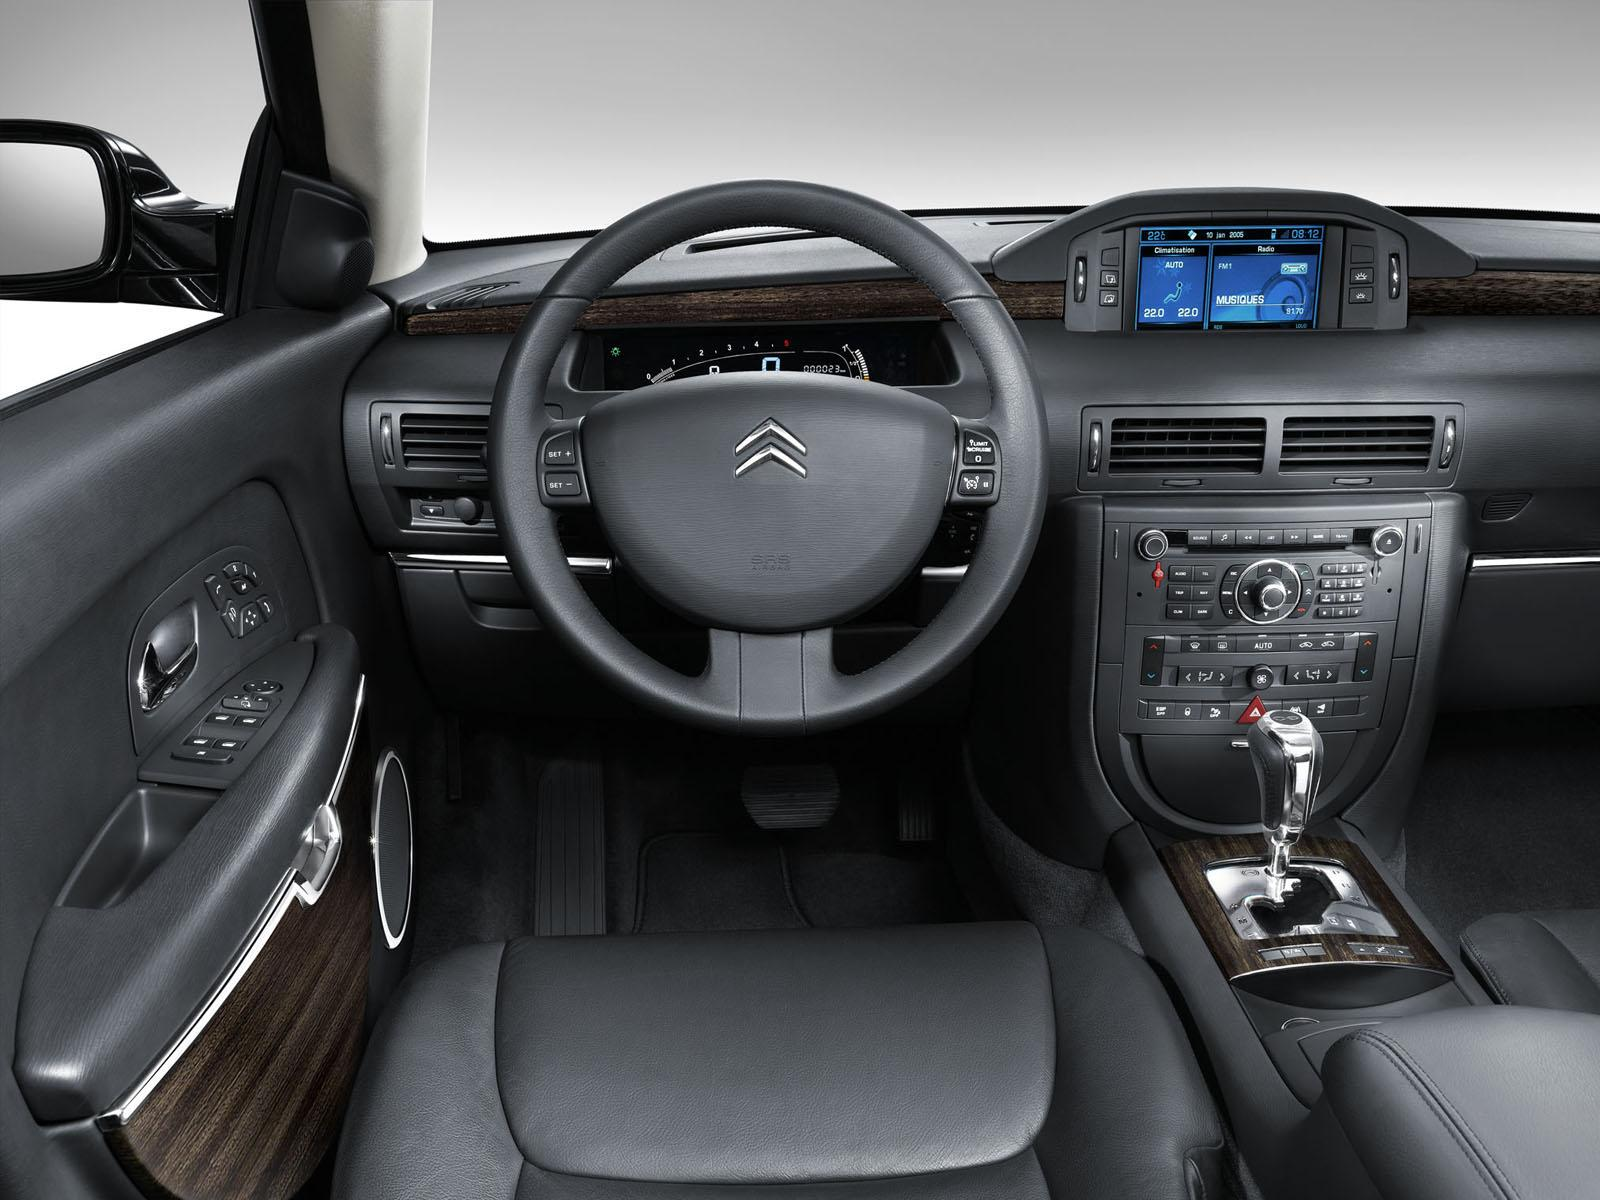 Inside C6 V6 HDi Exclusive 2005